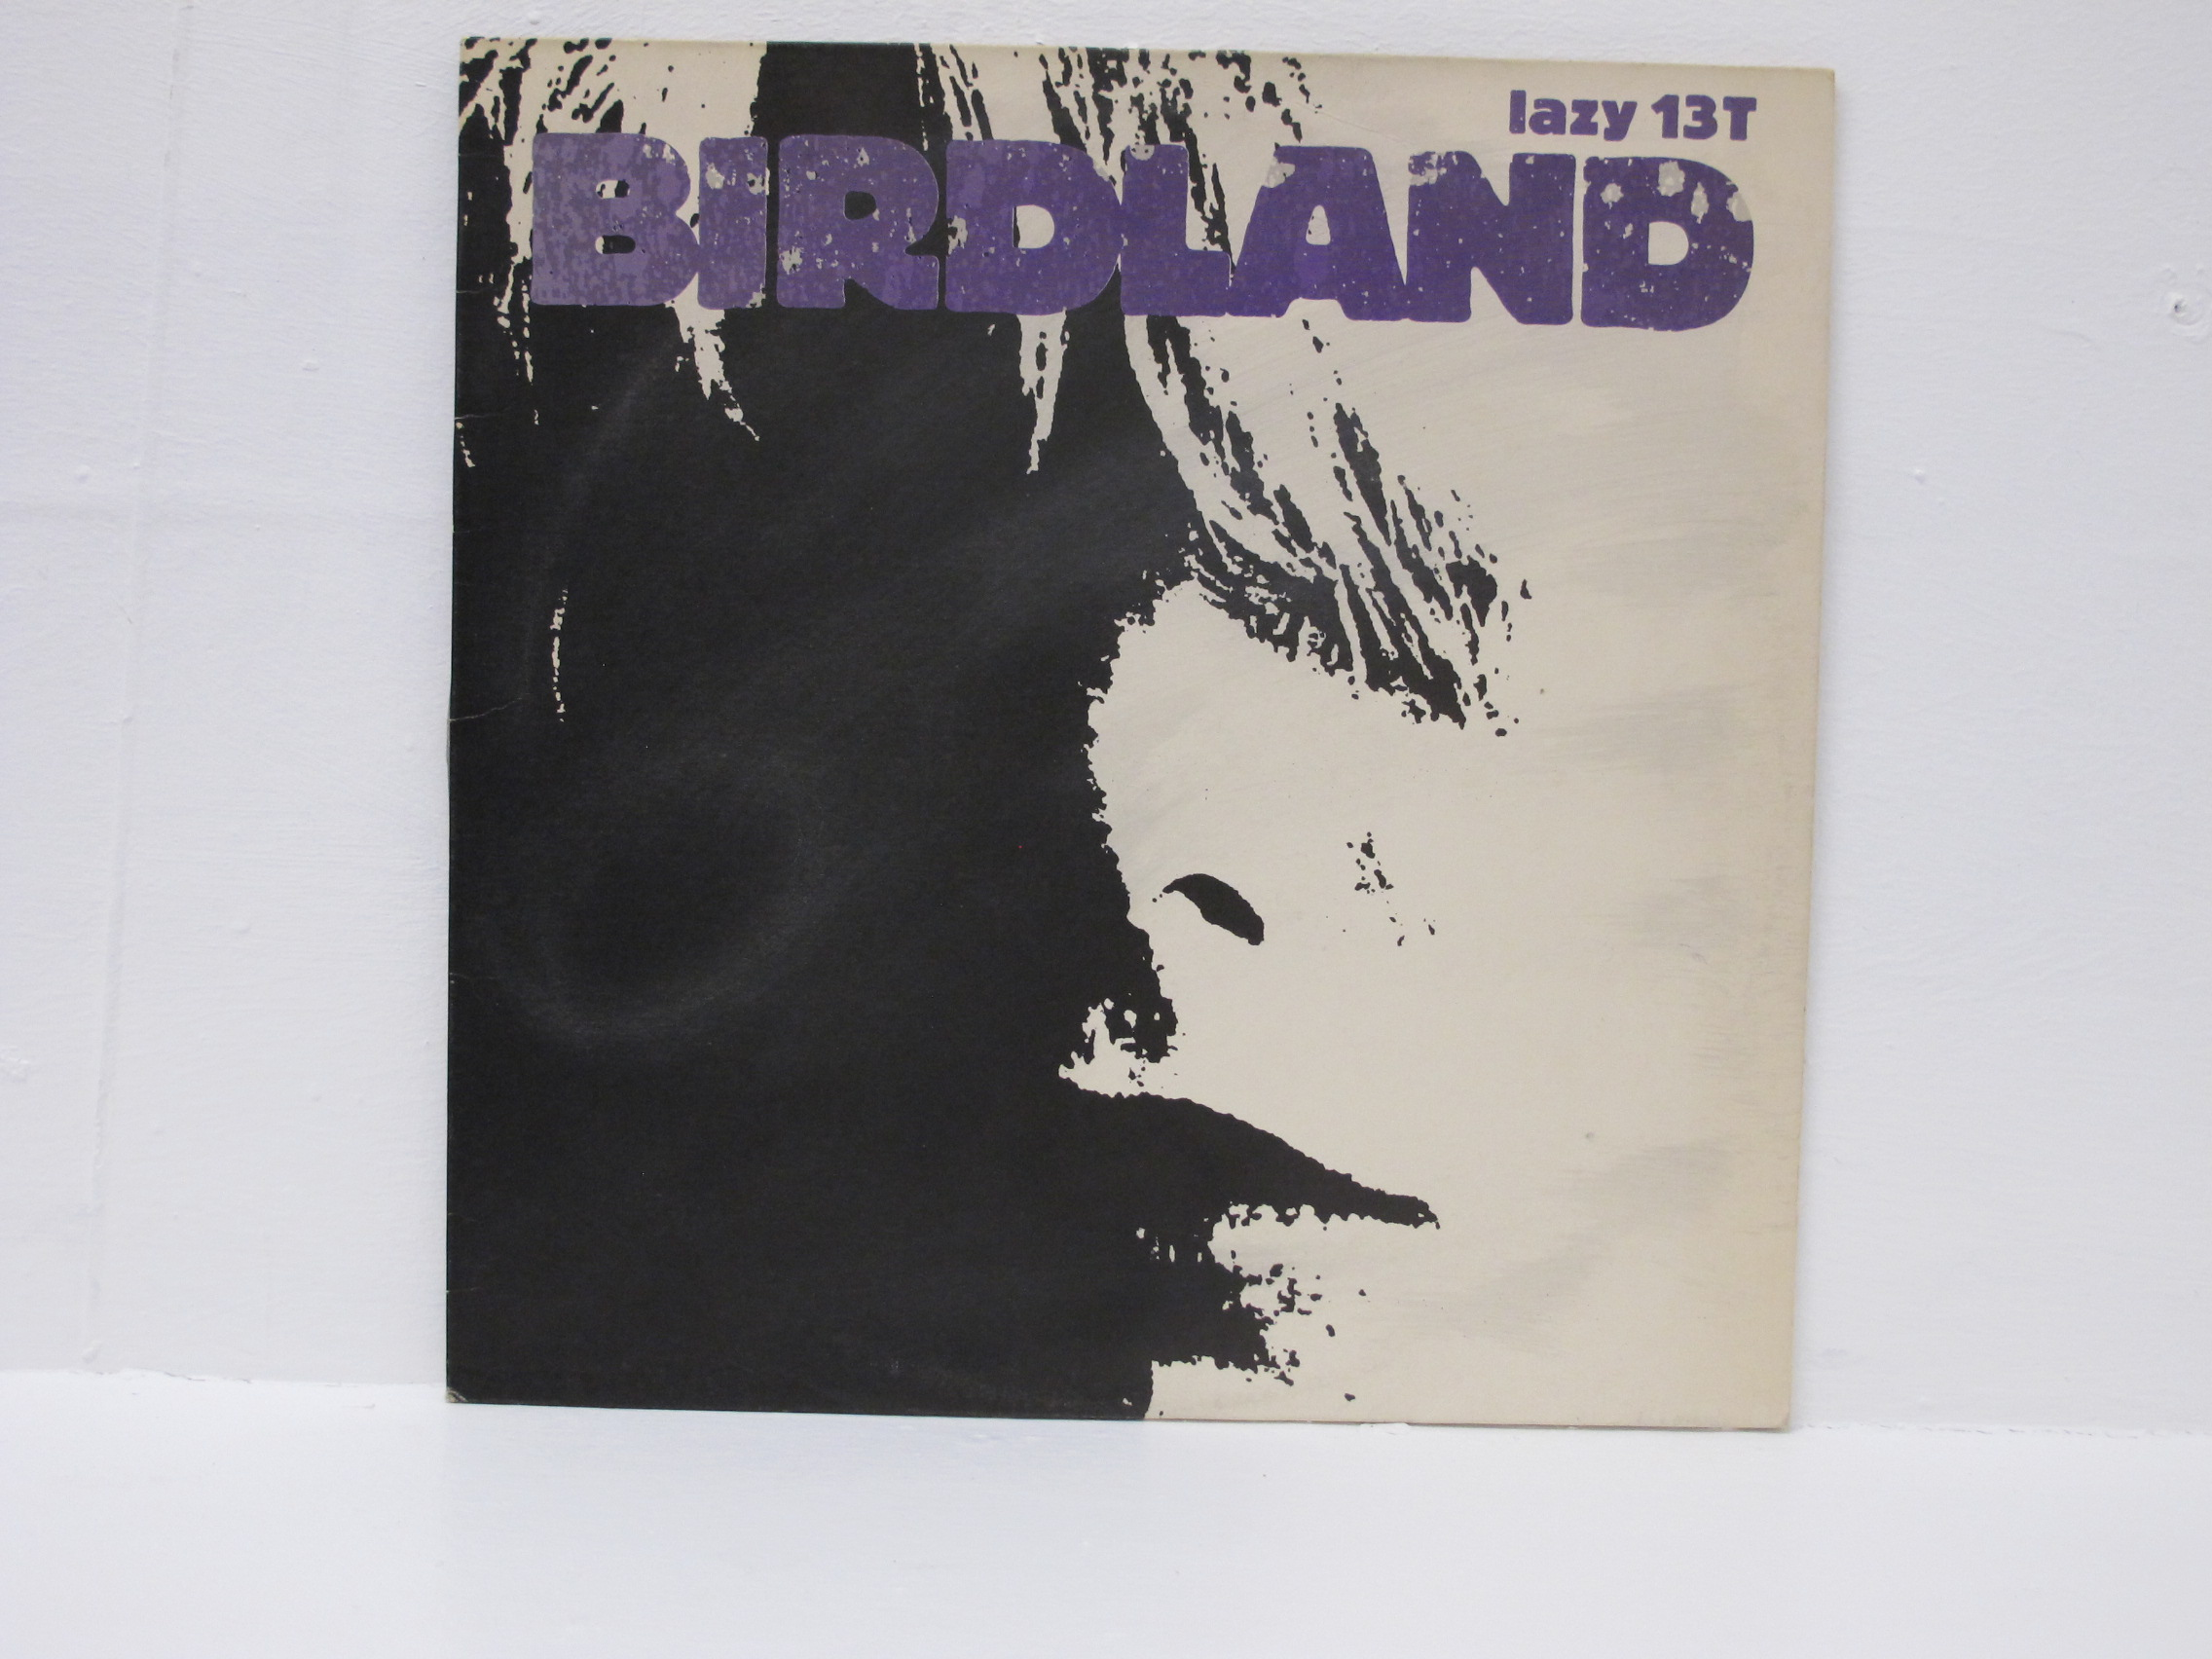 Birdland - Hollow Heart 13T